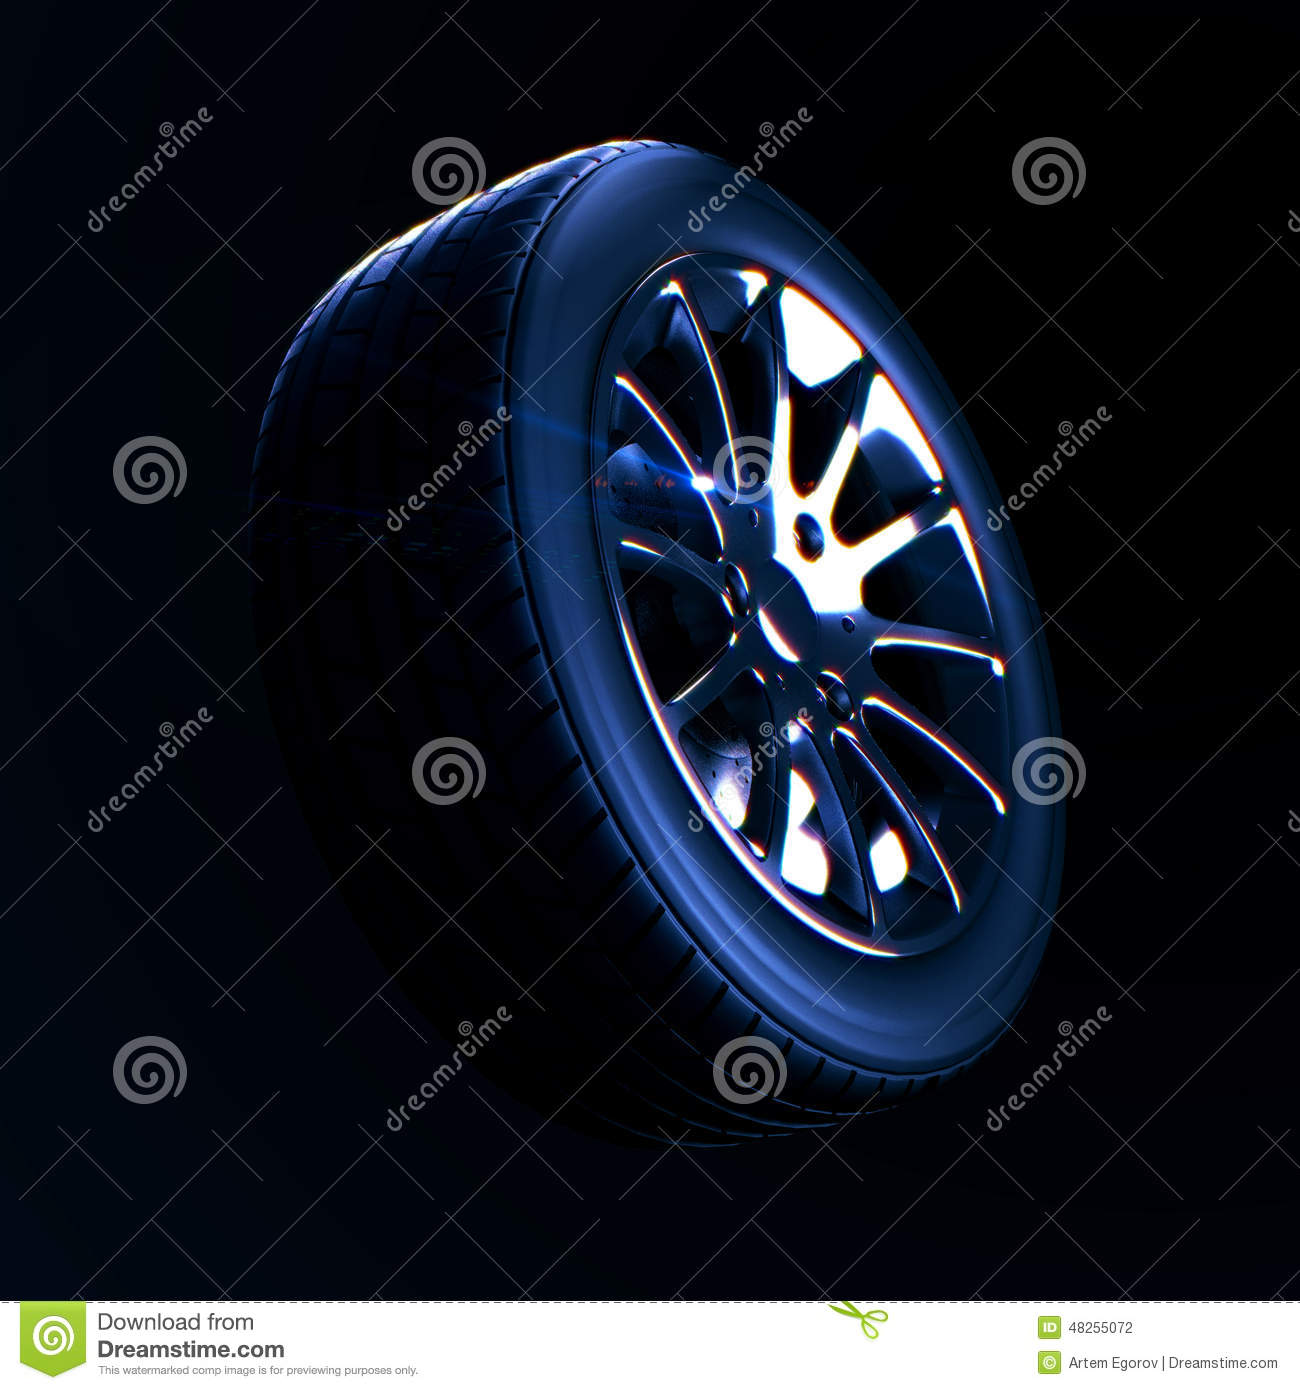 Car Tire With Depth Of Field Blur On Black Background Stock Illustration - Image: 48255072